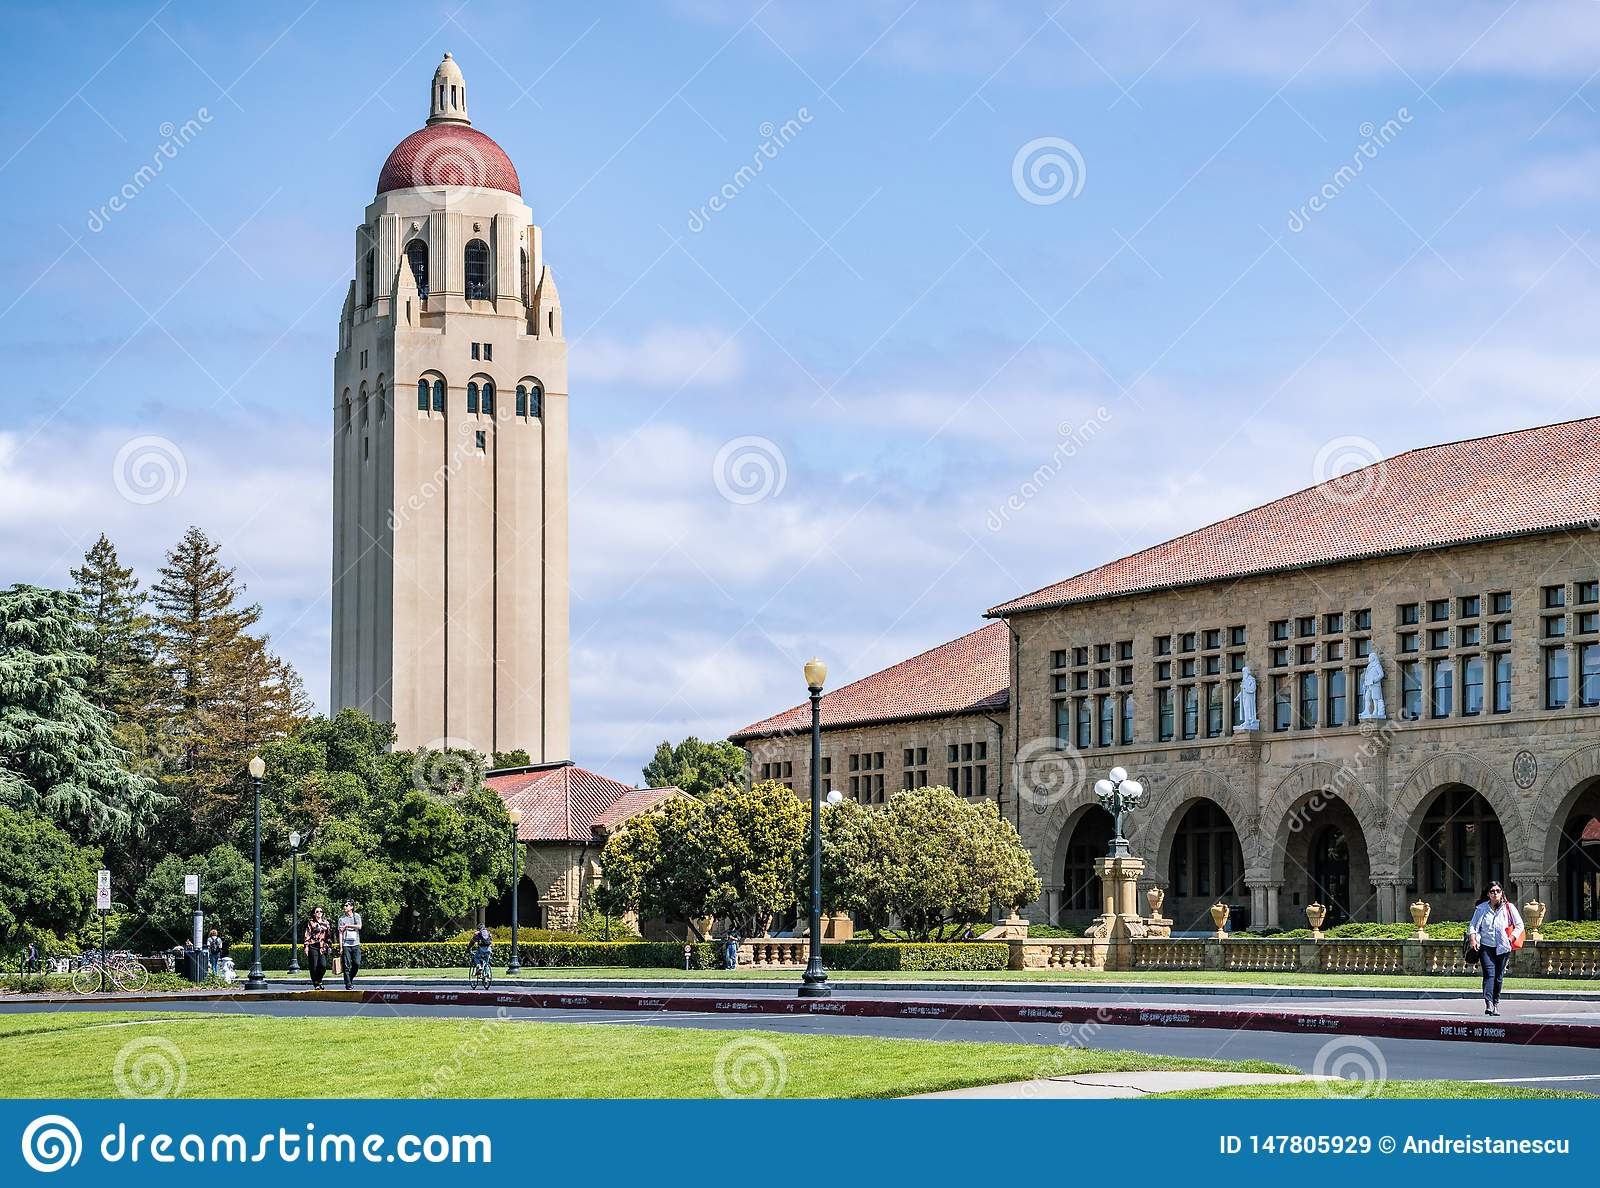 May 9, 2019 Palo Alto / CA / USA - Exterior view of the Main Quad at Stanford University